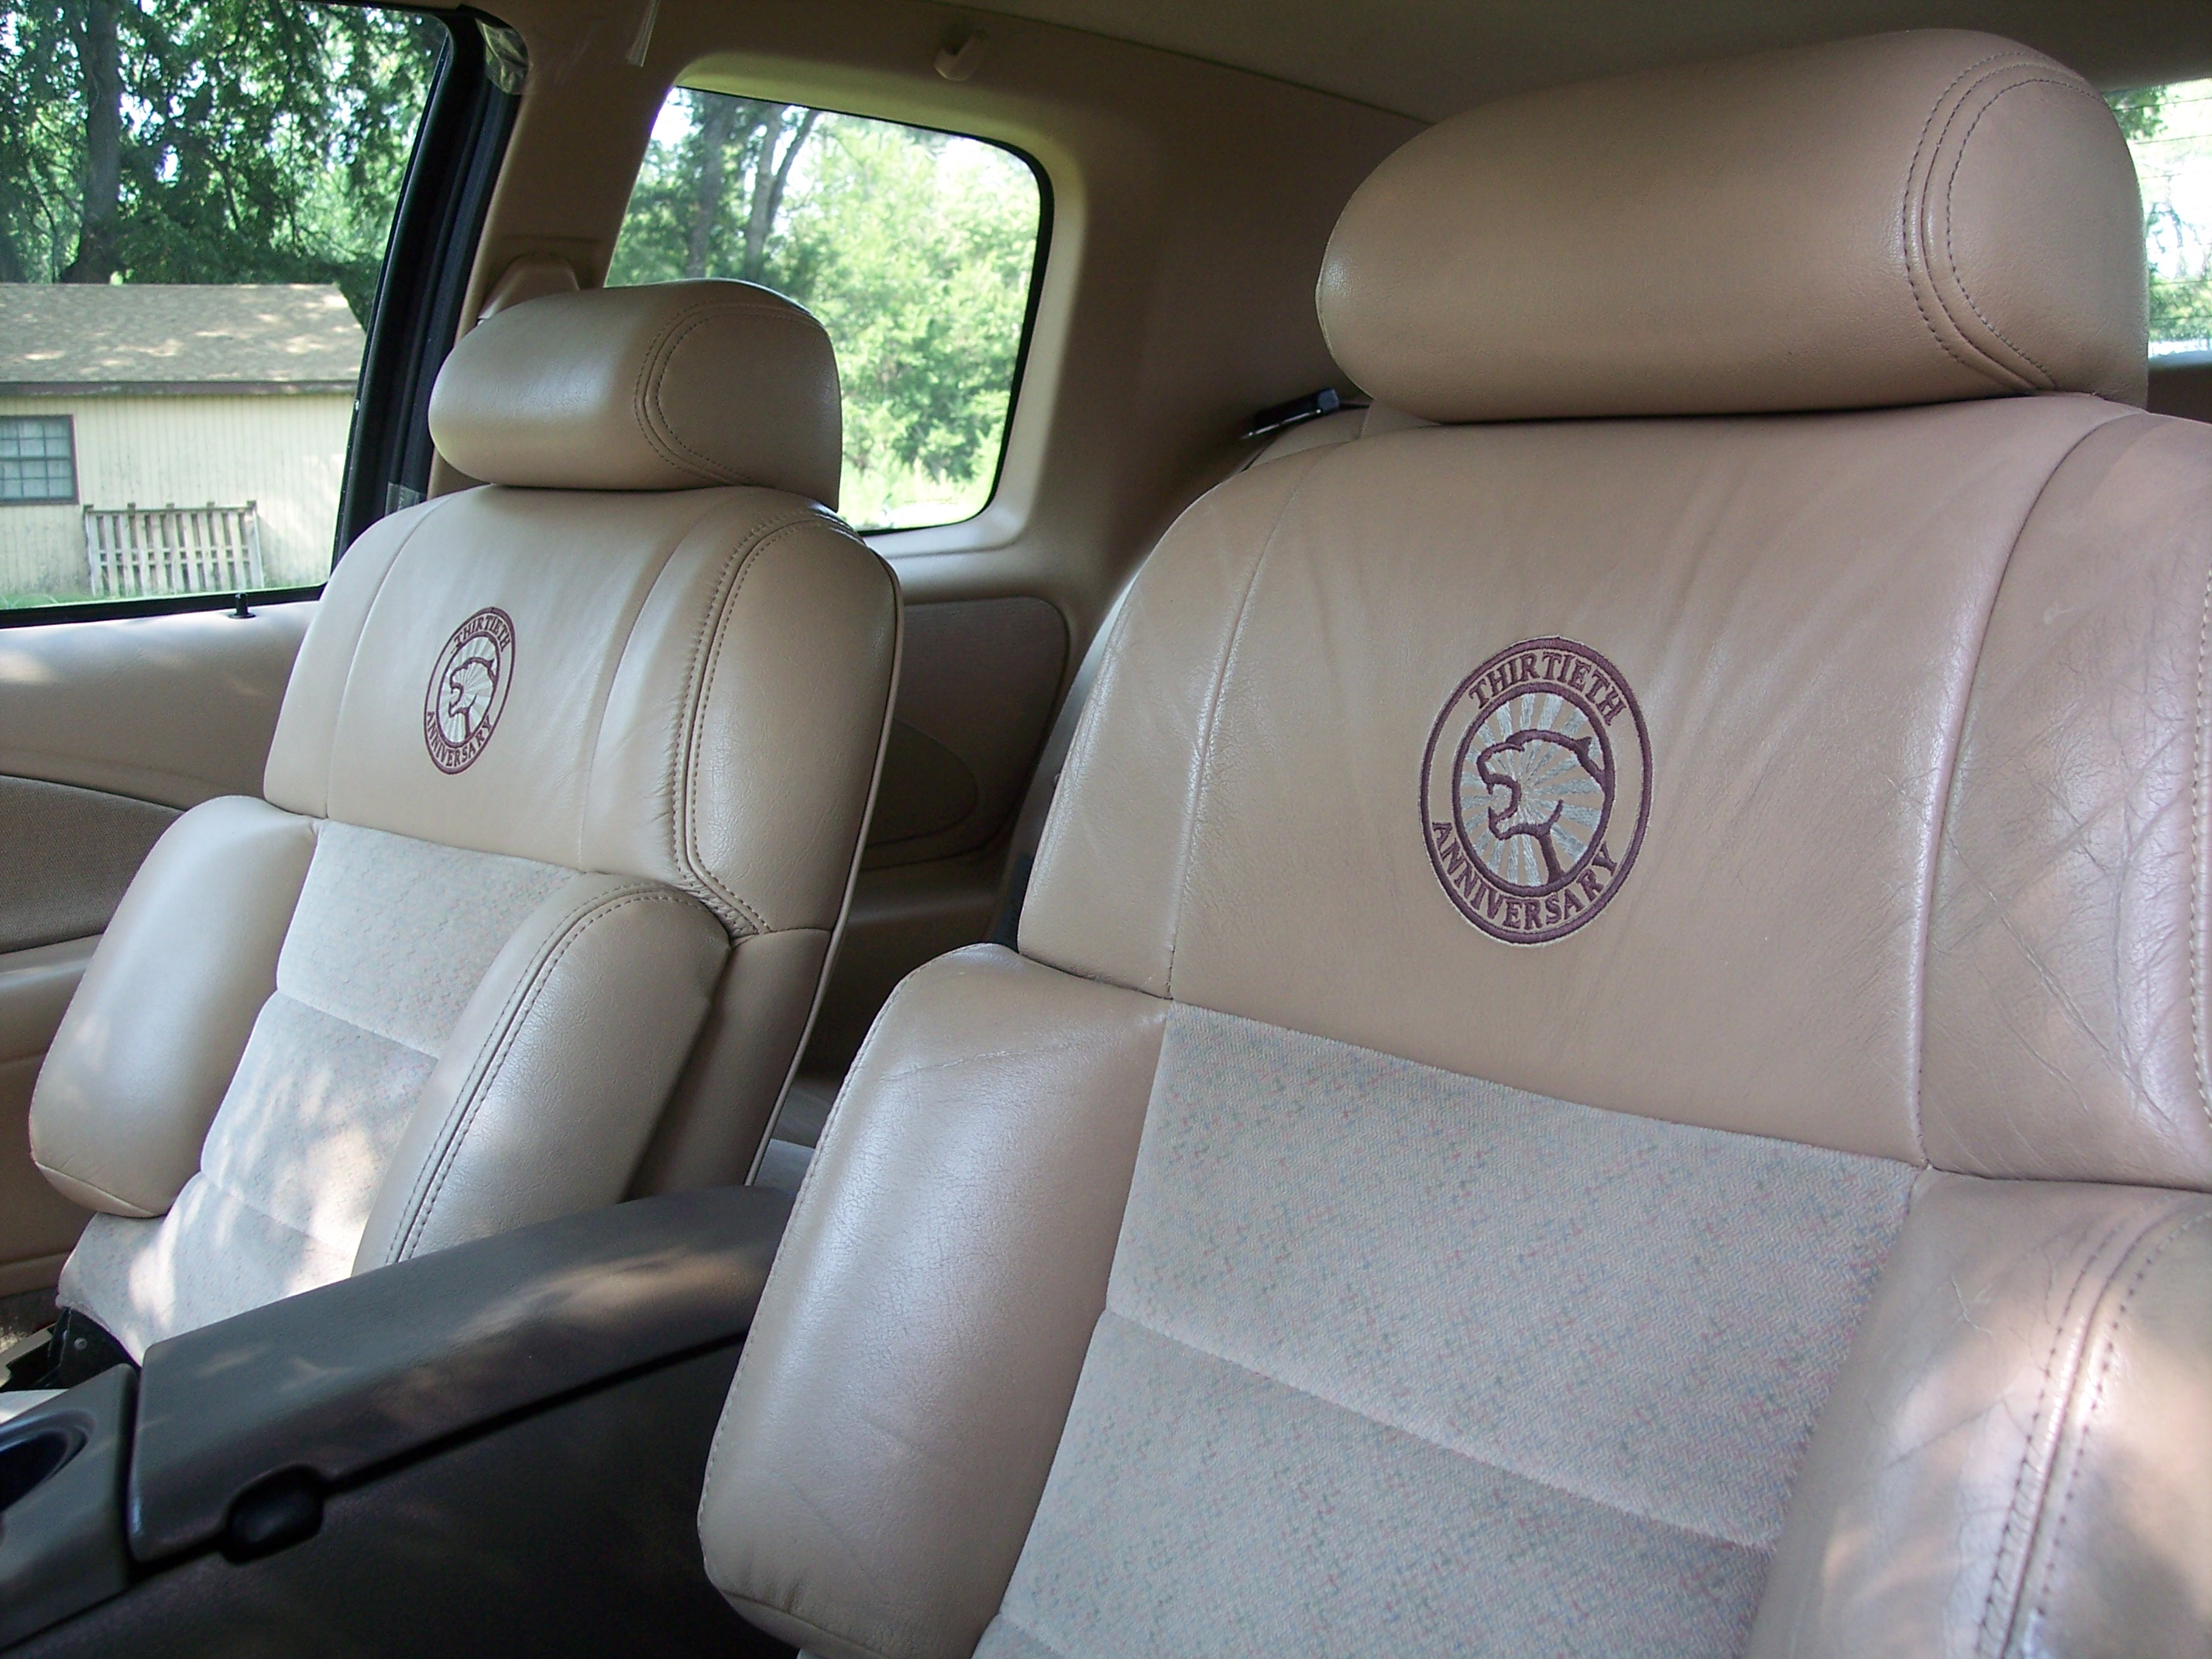 Cougar leather seats